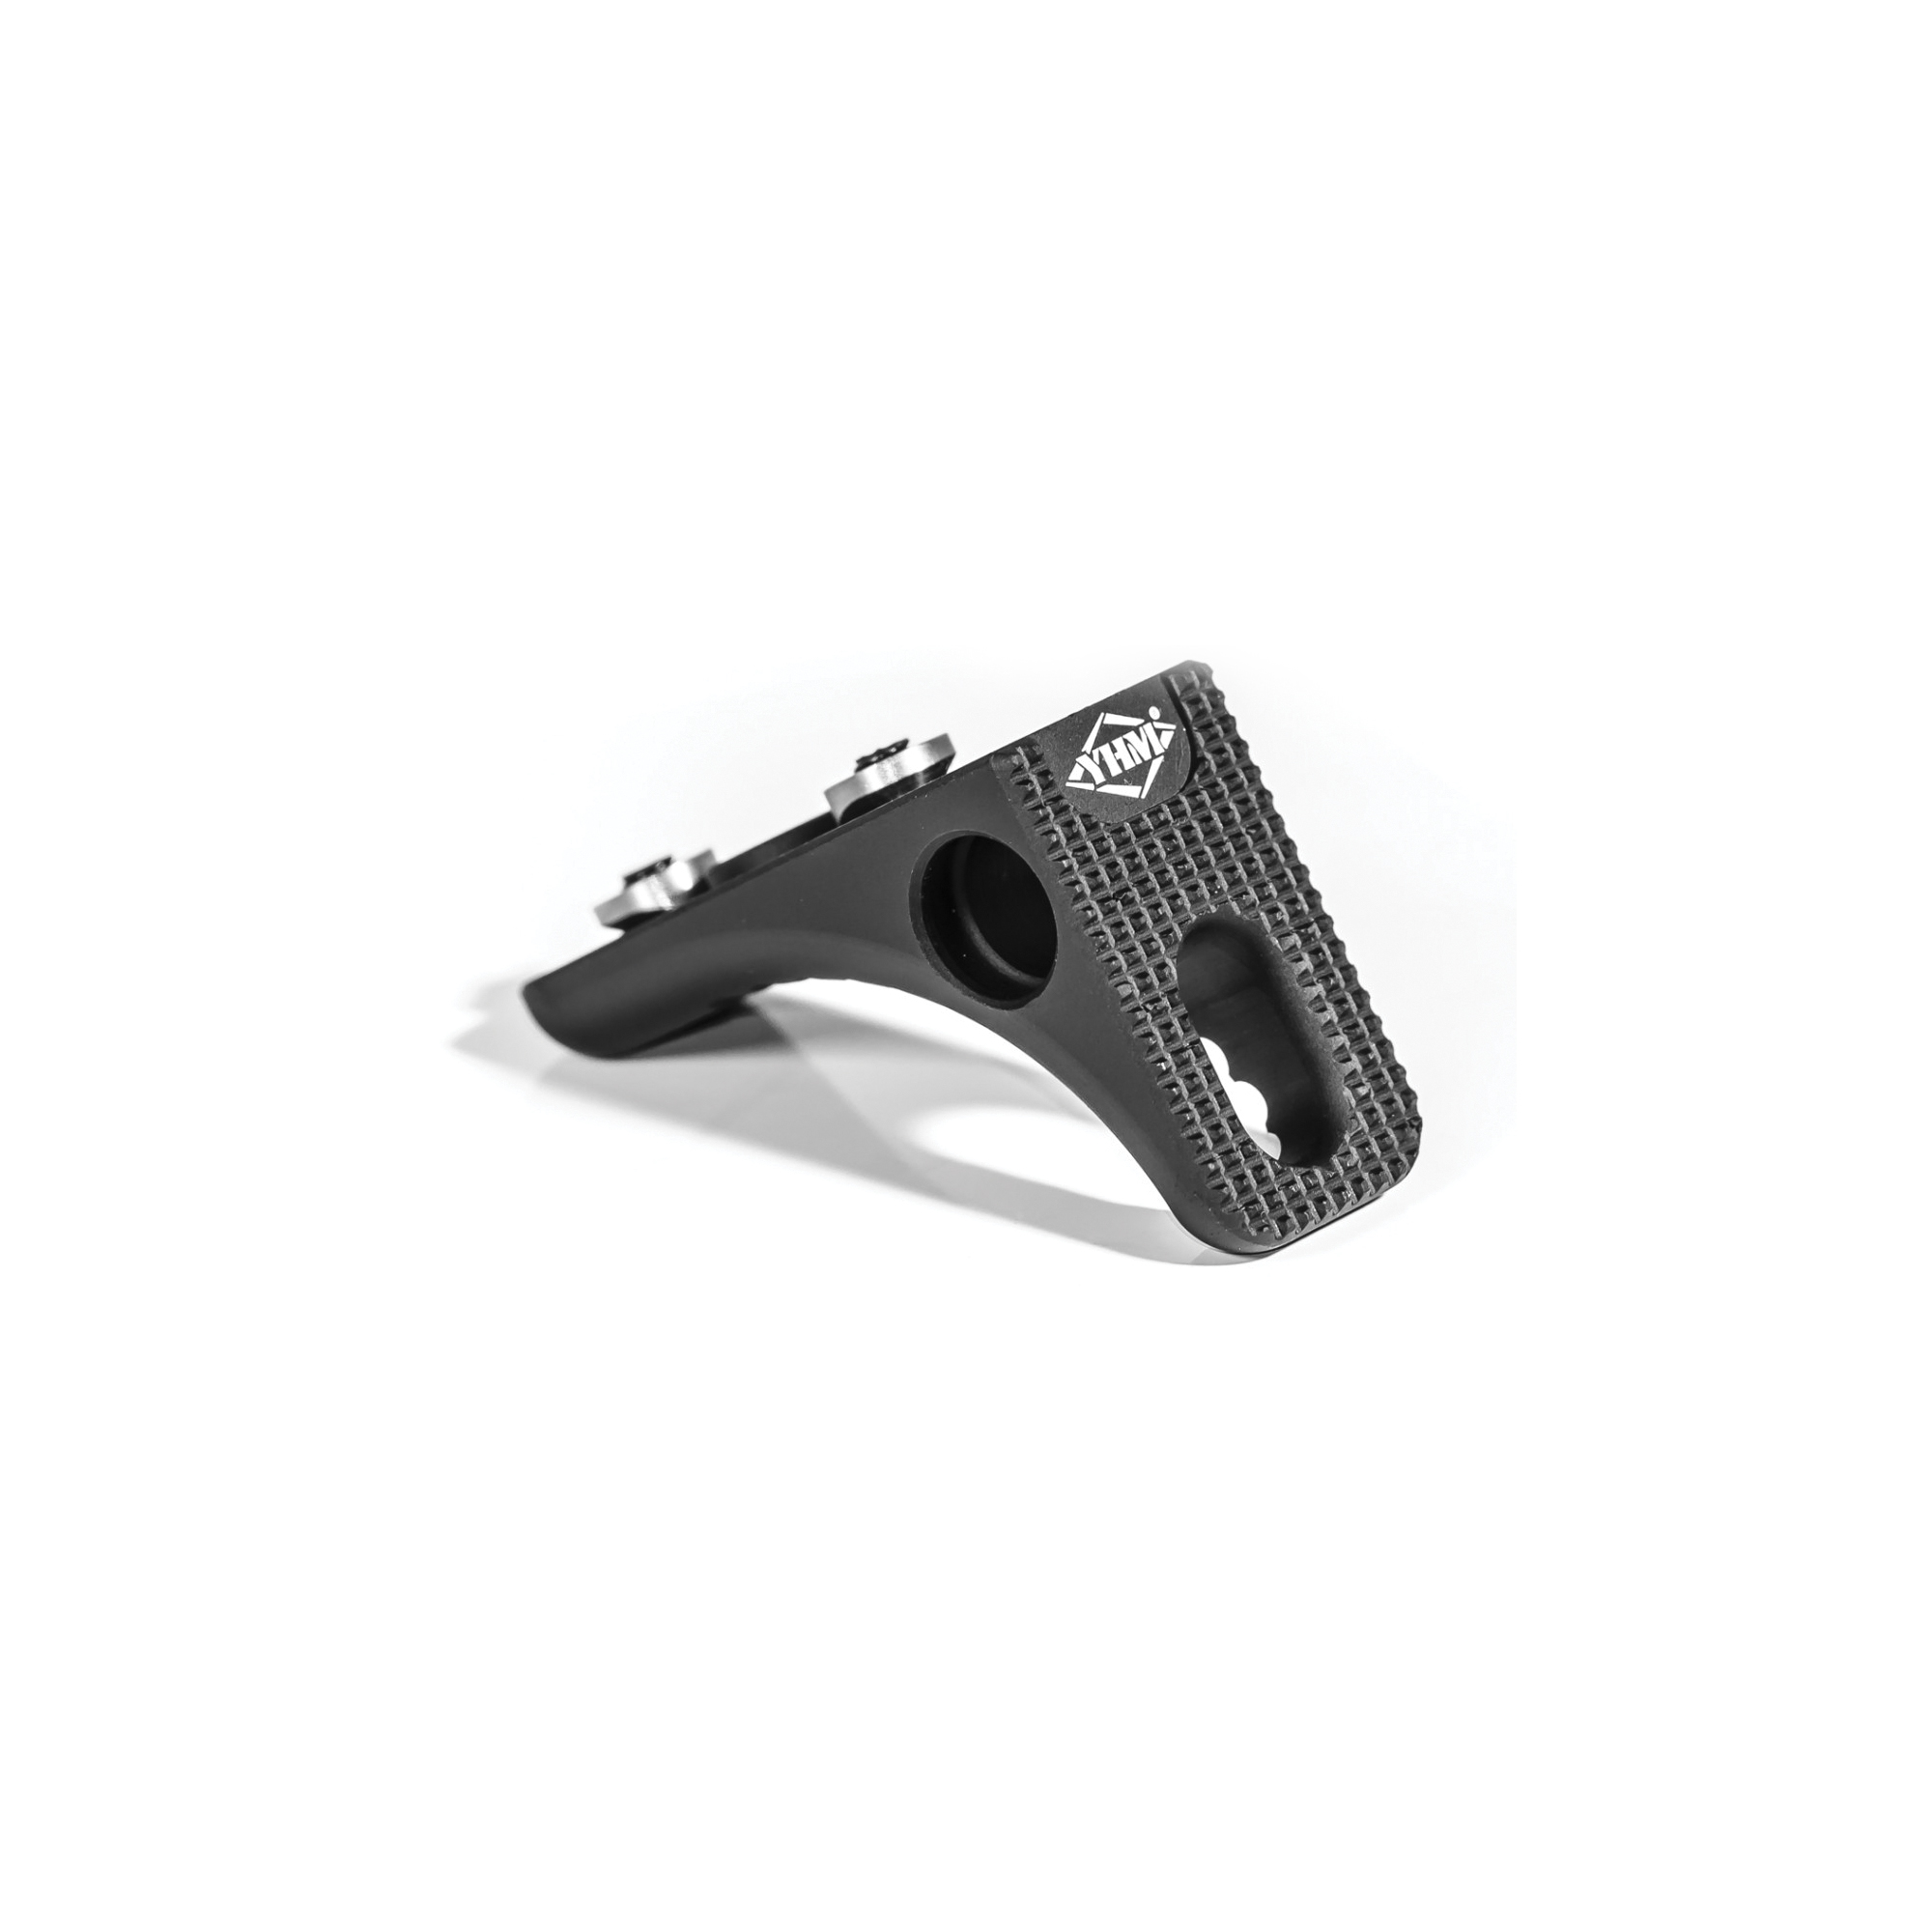 YHM's Keymod Hand Stop / Barrier Stop easily mounts on Keymod rails including YHM KR7 and S.L.K. series to provide excellent weapon control. The textured front side is for superior traction on barriers and obstacles. The unit allows the use of a Q.D. Sling Swivel (YHM-9466) from either side. Also allows the use of Clip or Safety Lock Slings on the front slot. Made from hardcoat anodized 6061-T6 aluminum. Includes all mounting hardware and wrench.